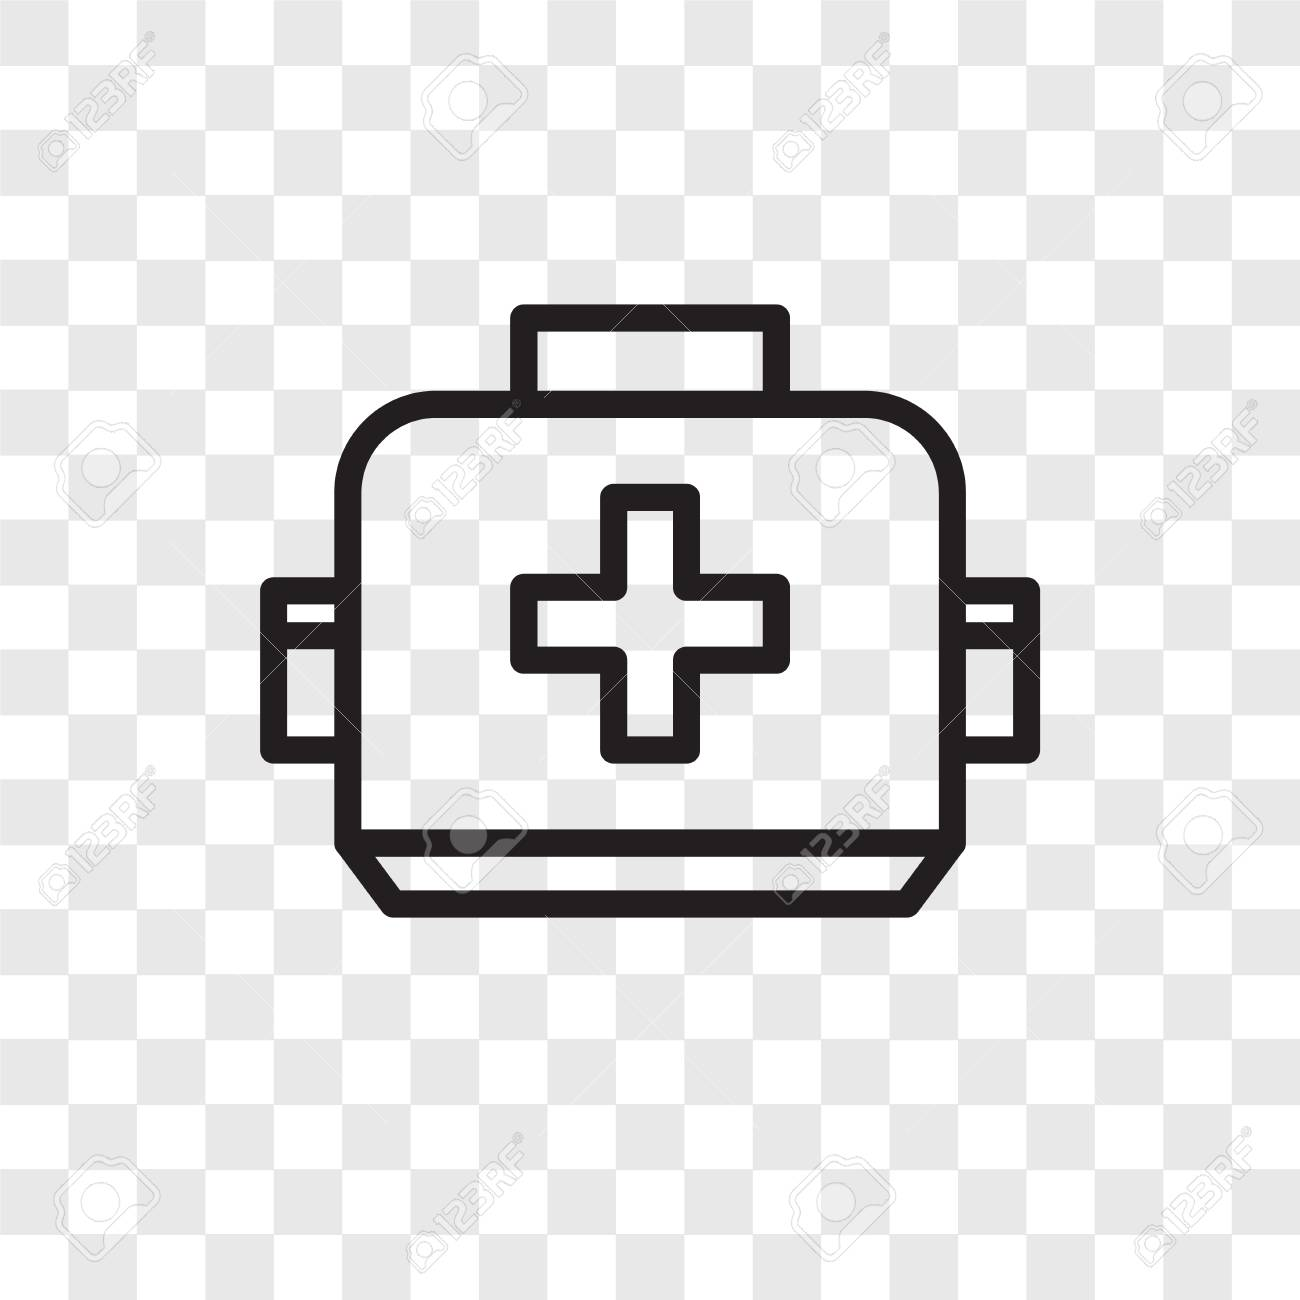 First aid box vector icon isolated on transparent background,